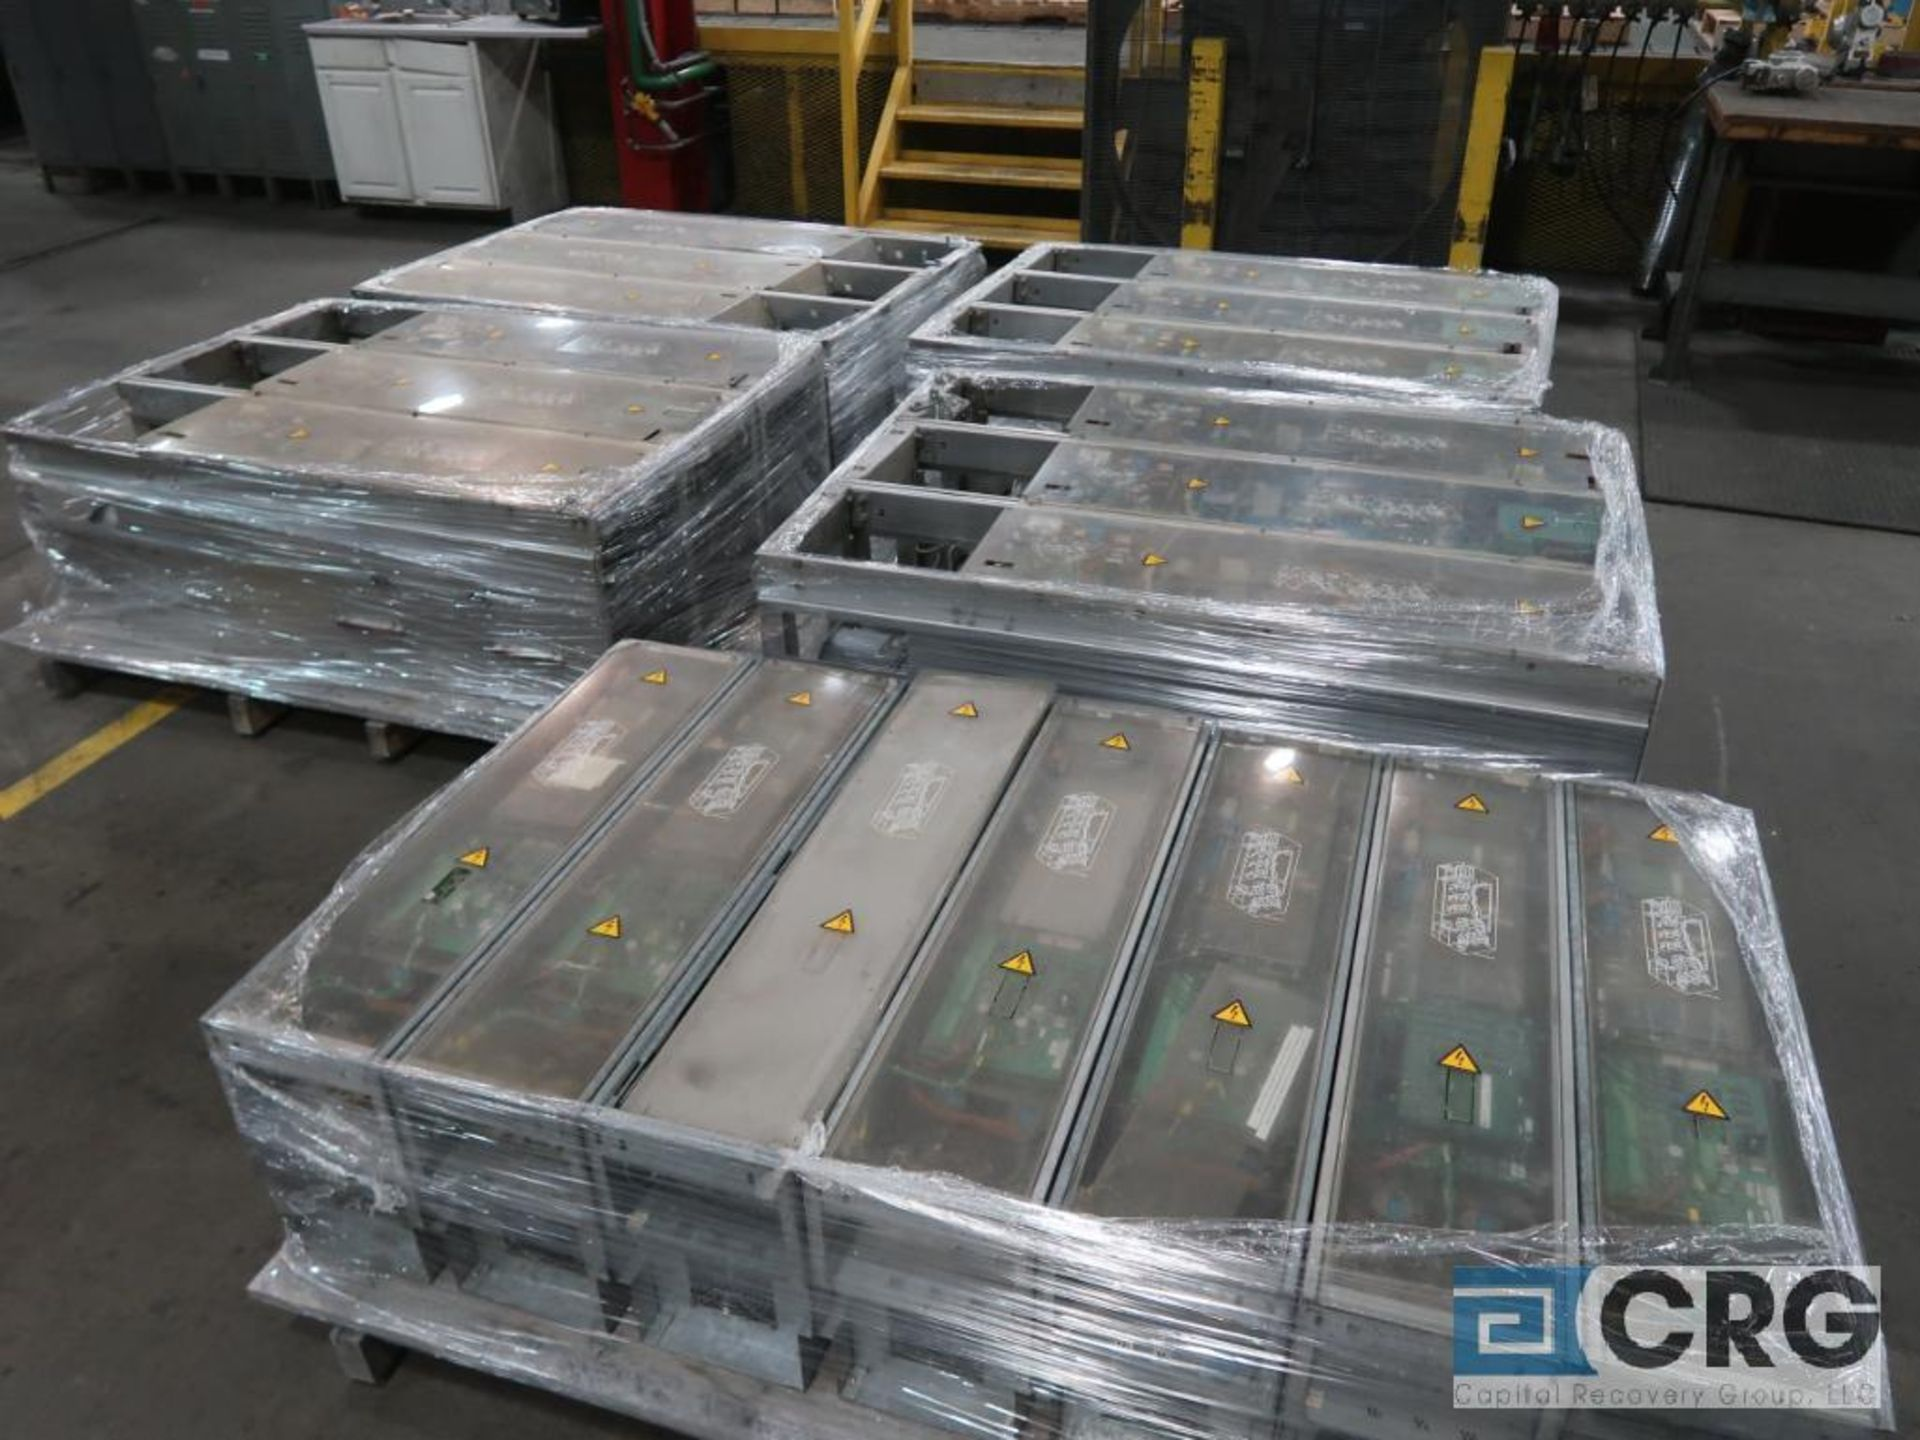 Lot of (13) pallets with electrical drive system with (18) ABB drives, Reliance, Auto Max SA3000 - Image 4 of 4